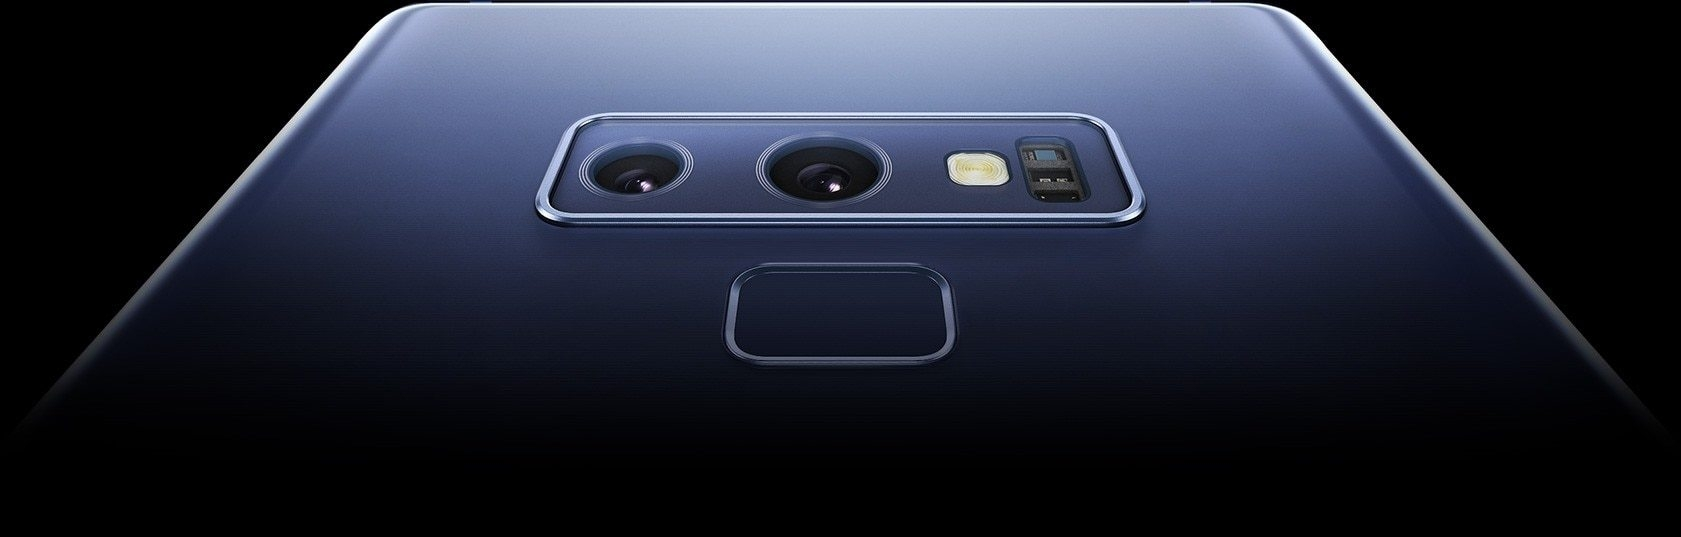 An extreme closeup of Galaxy Note9's dual lens rear camera and fingerprint scanner